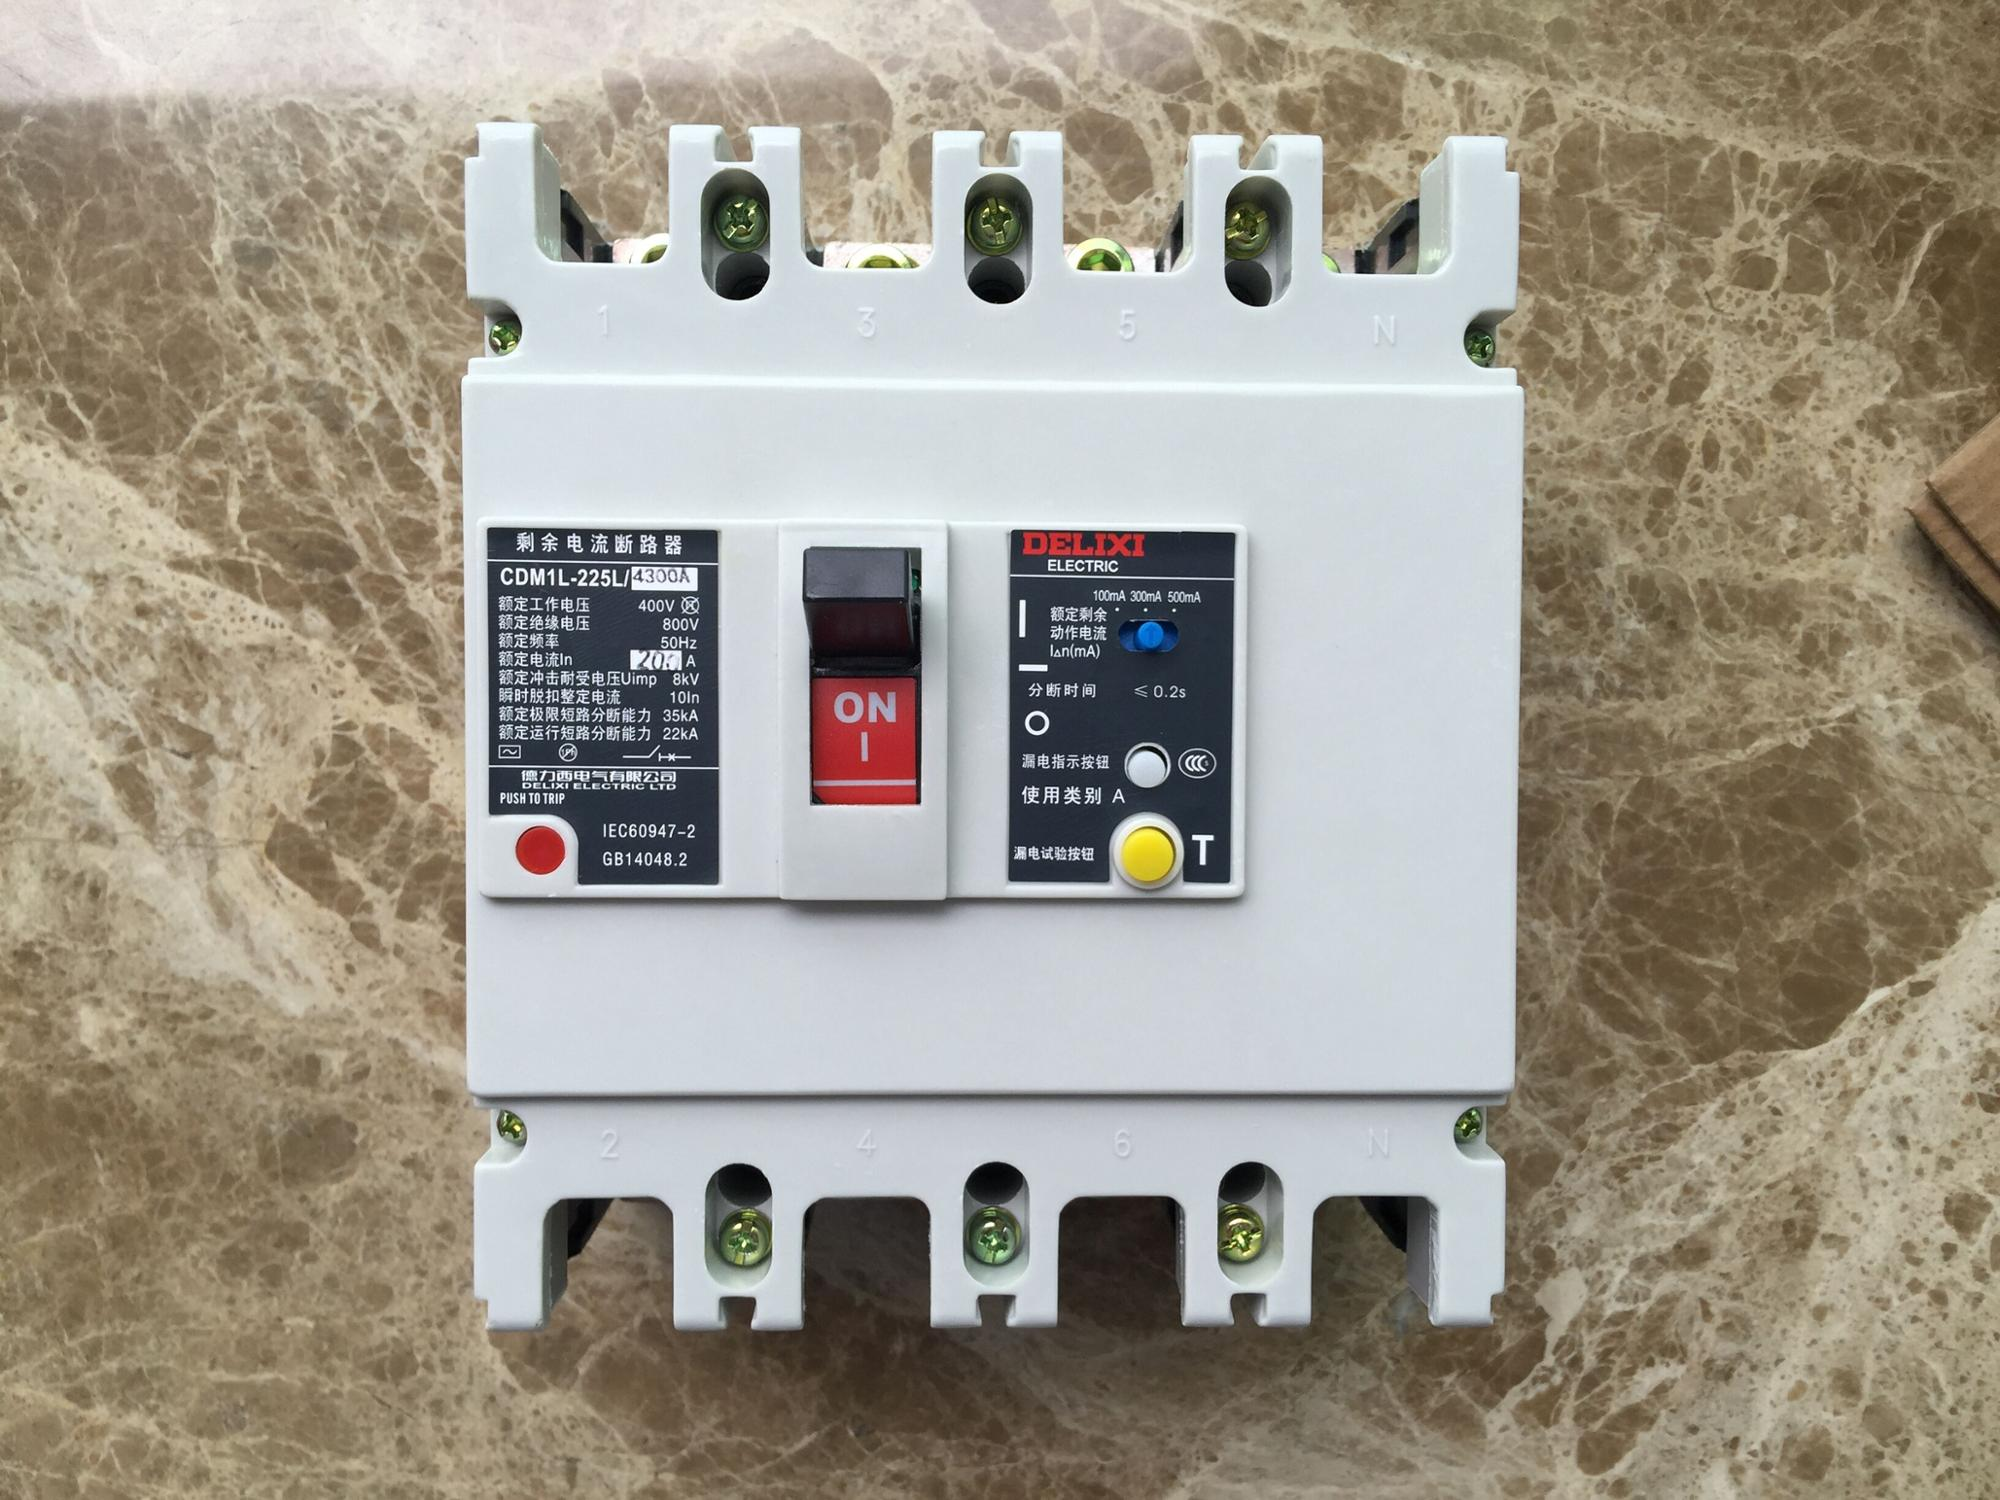 Cdm1 Thermal Circuit Breaker Mccb With Shunt Trip Coil Buy How Do Breakers Work Qq20161117143802 Company Information